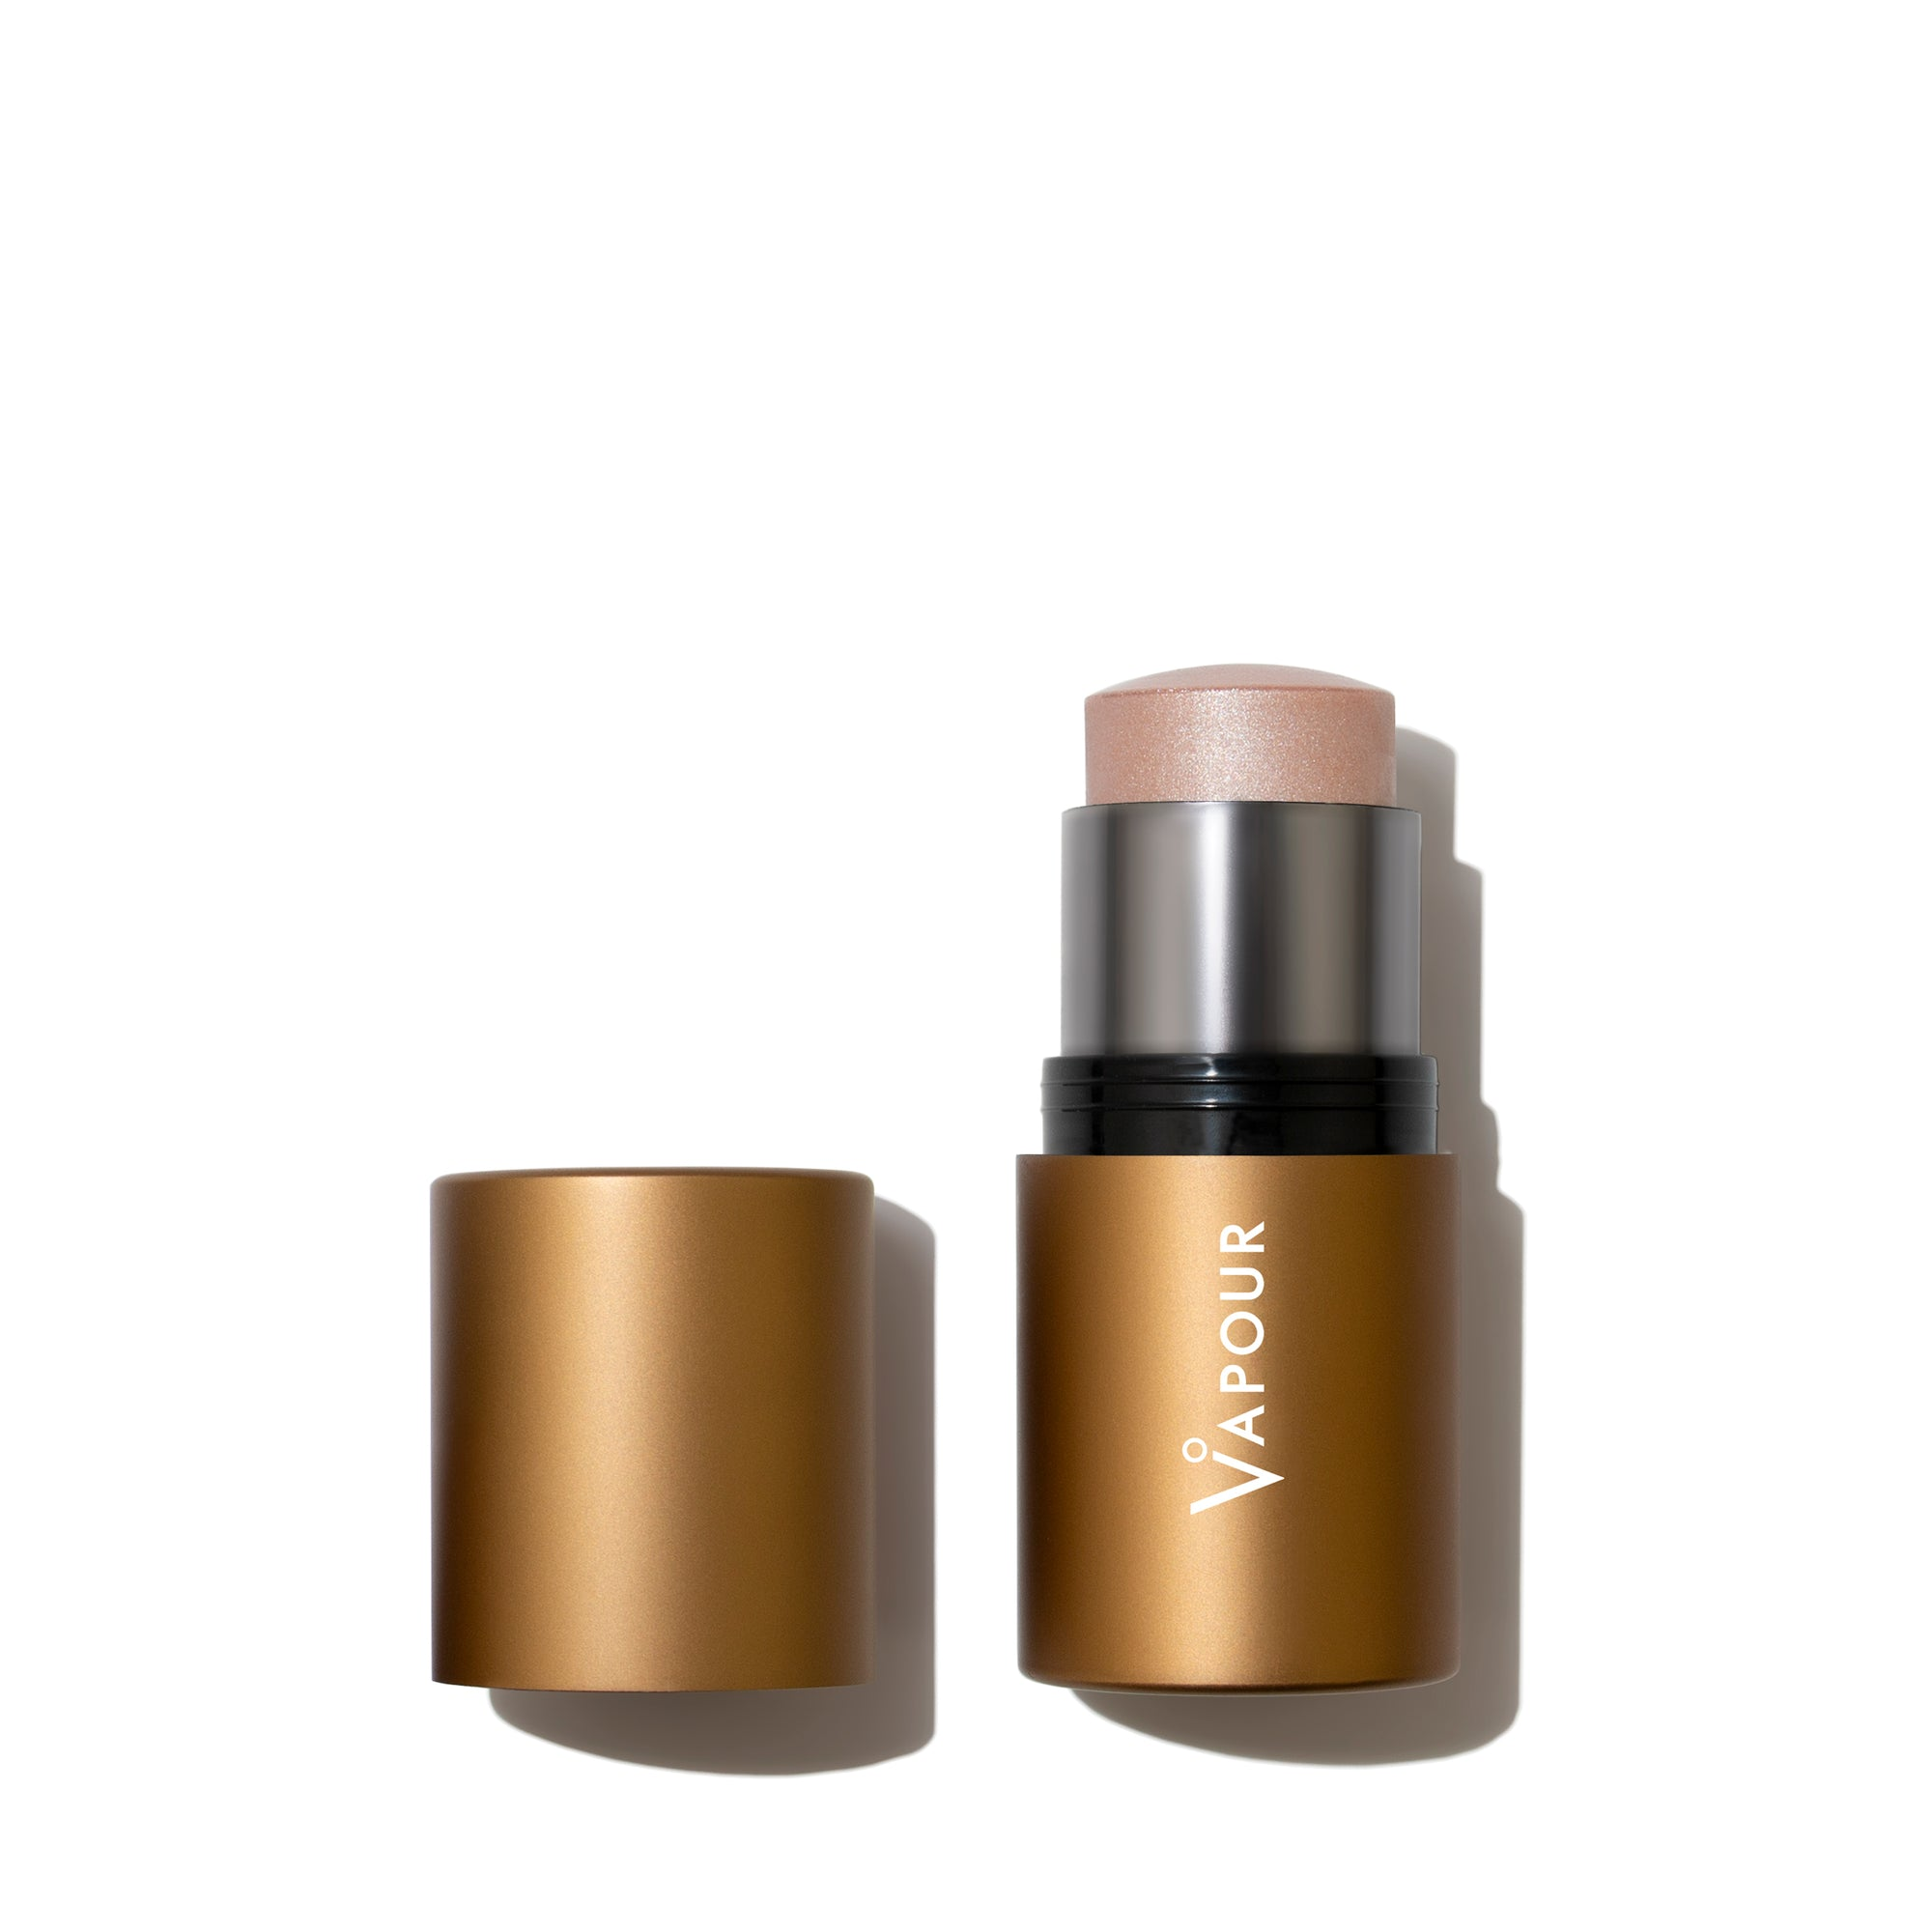 Vapour Highlight Stick - AILLEA